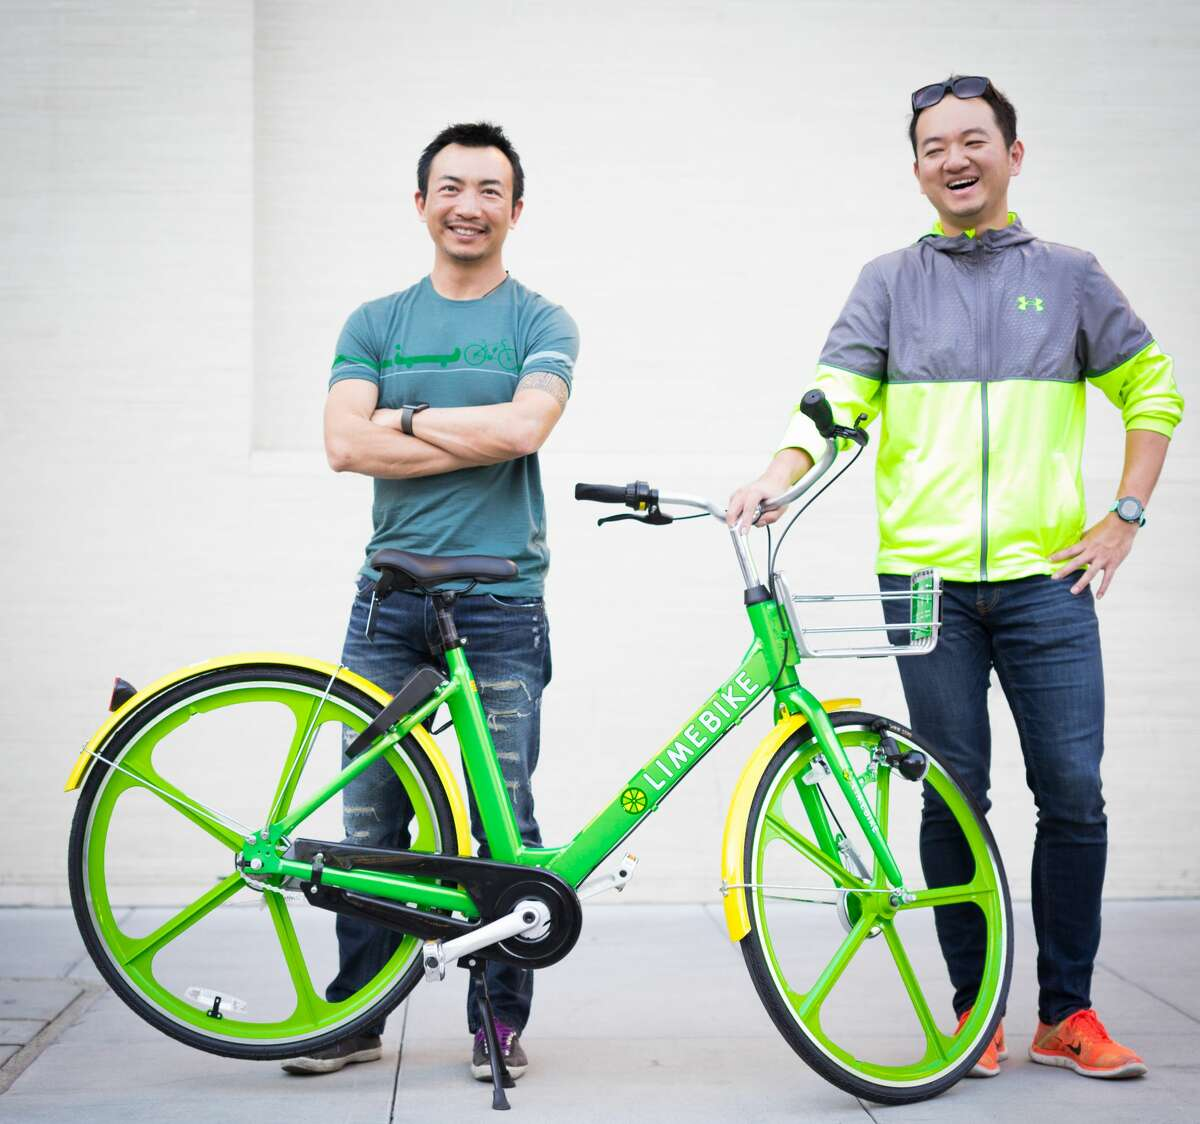 LimeBike, as well as other new bike share companies that run without stations, are planning to launch soon in Seattle now that SDOT has released regulations for a pilot program.